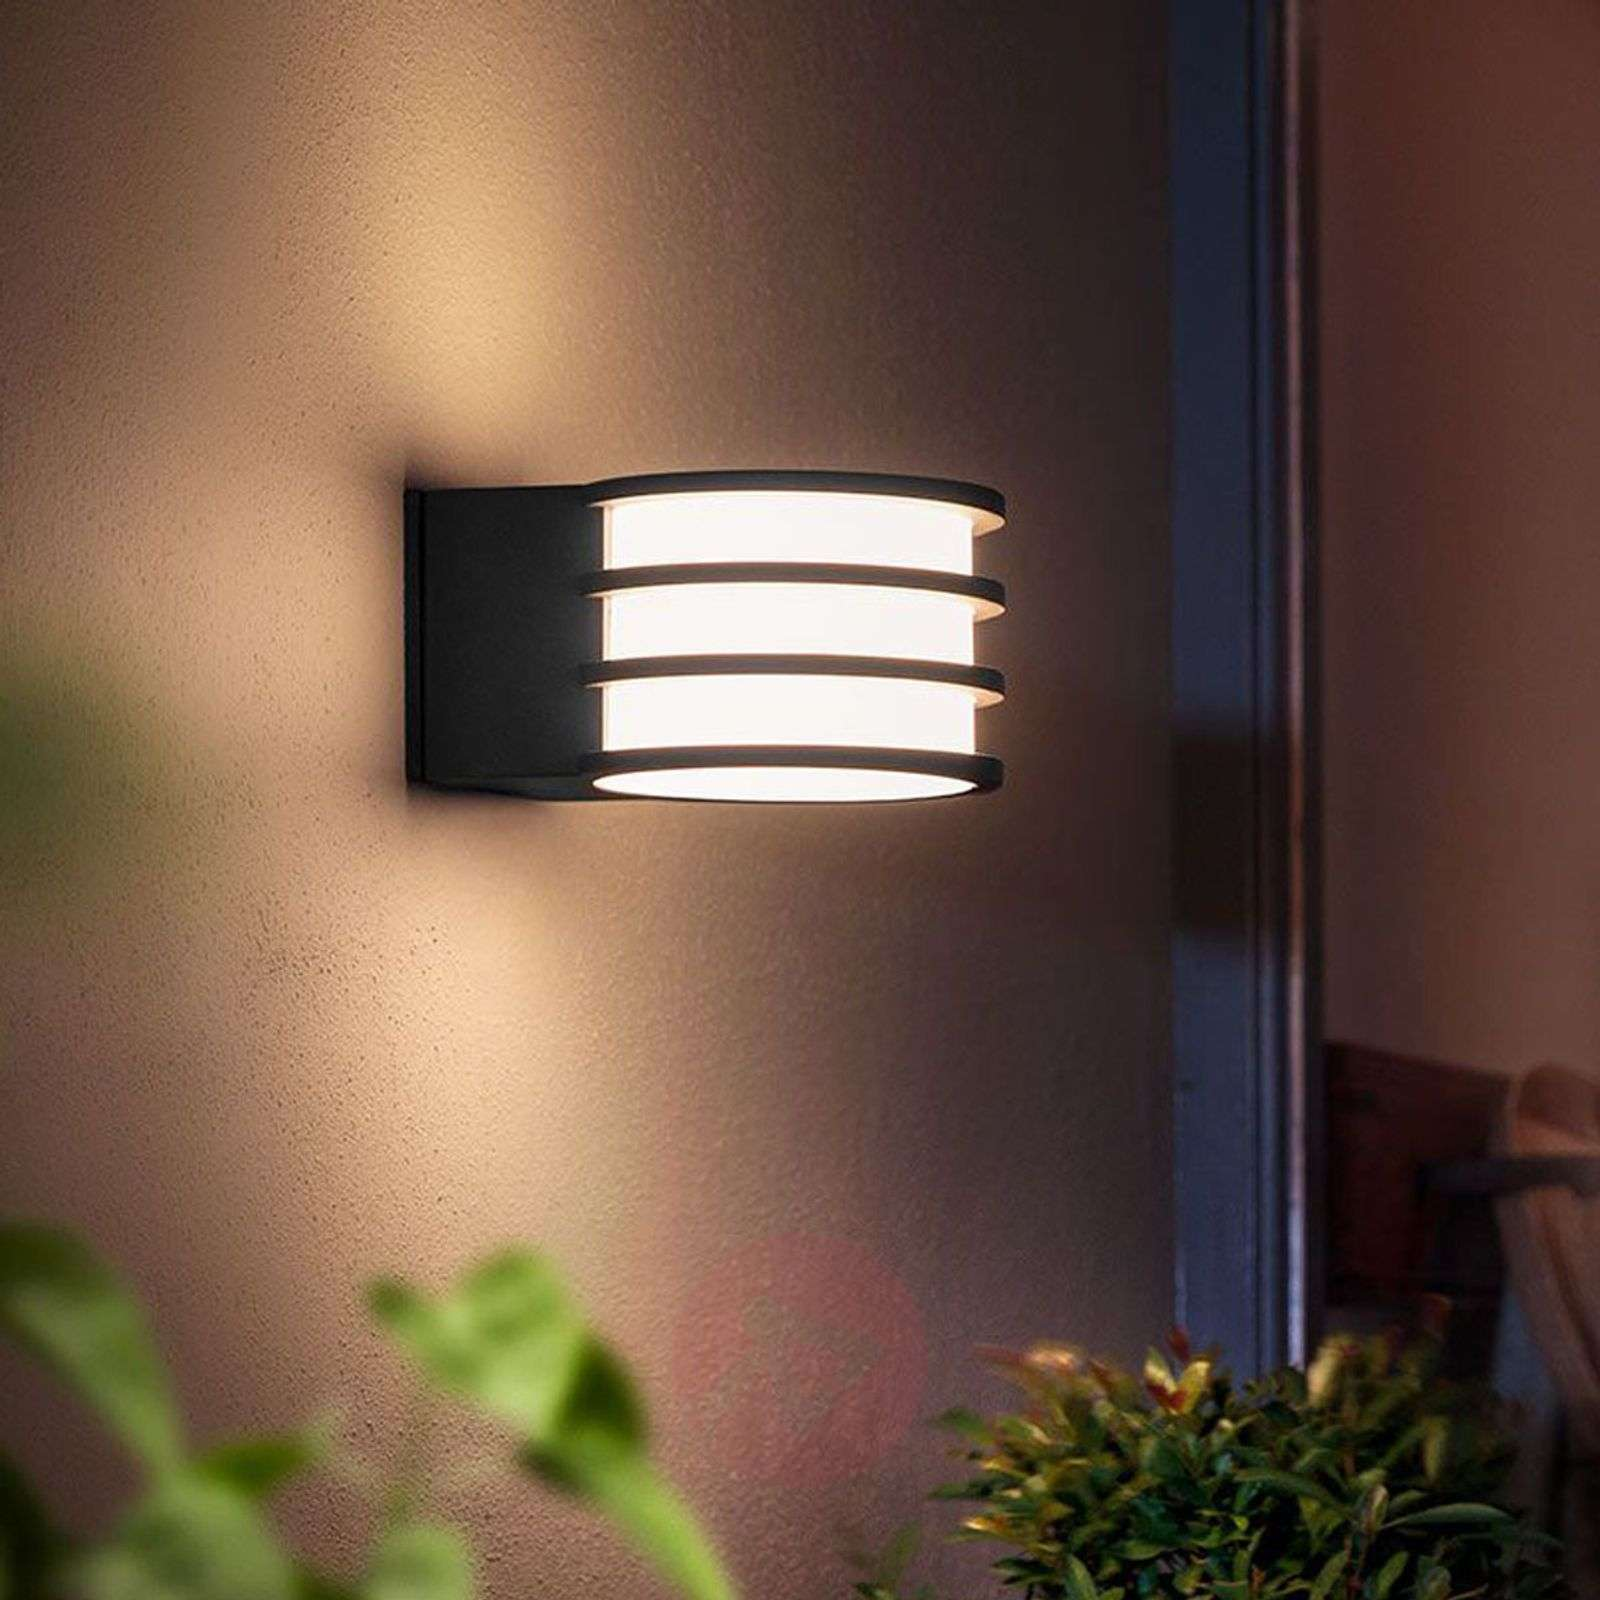 Philips Lampen Hue : Philips hue lucca led outdoor wall lamp lights ie